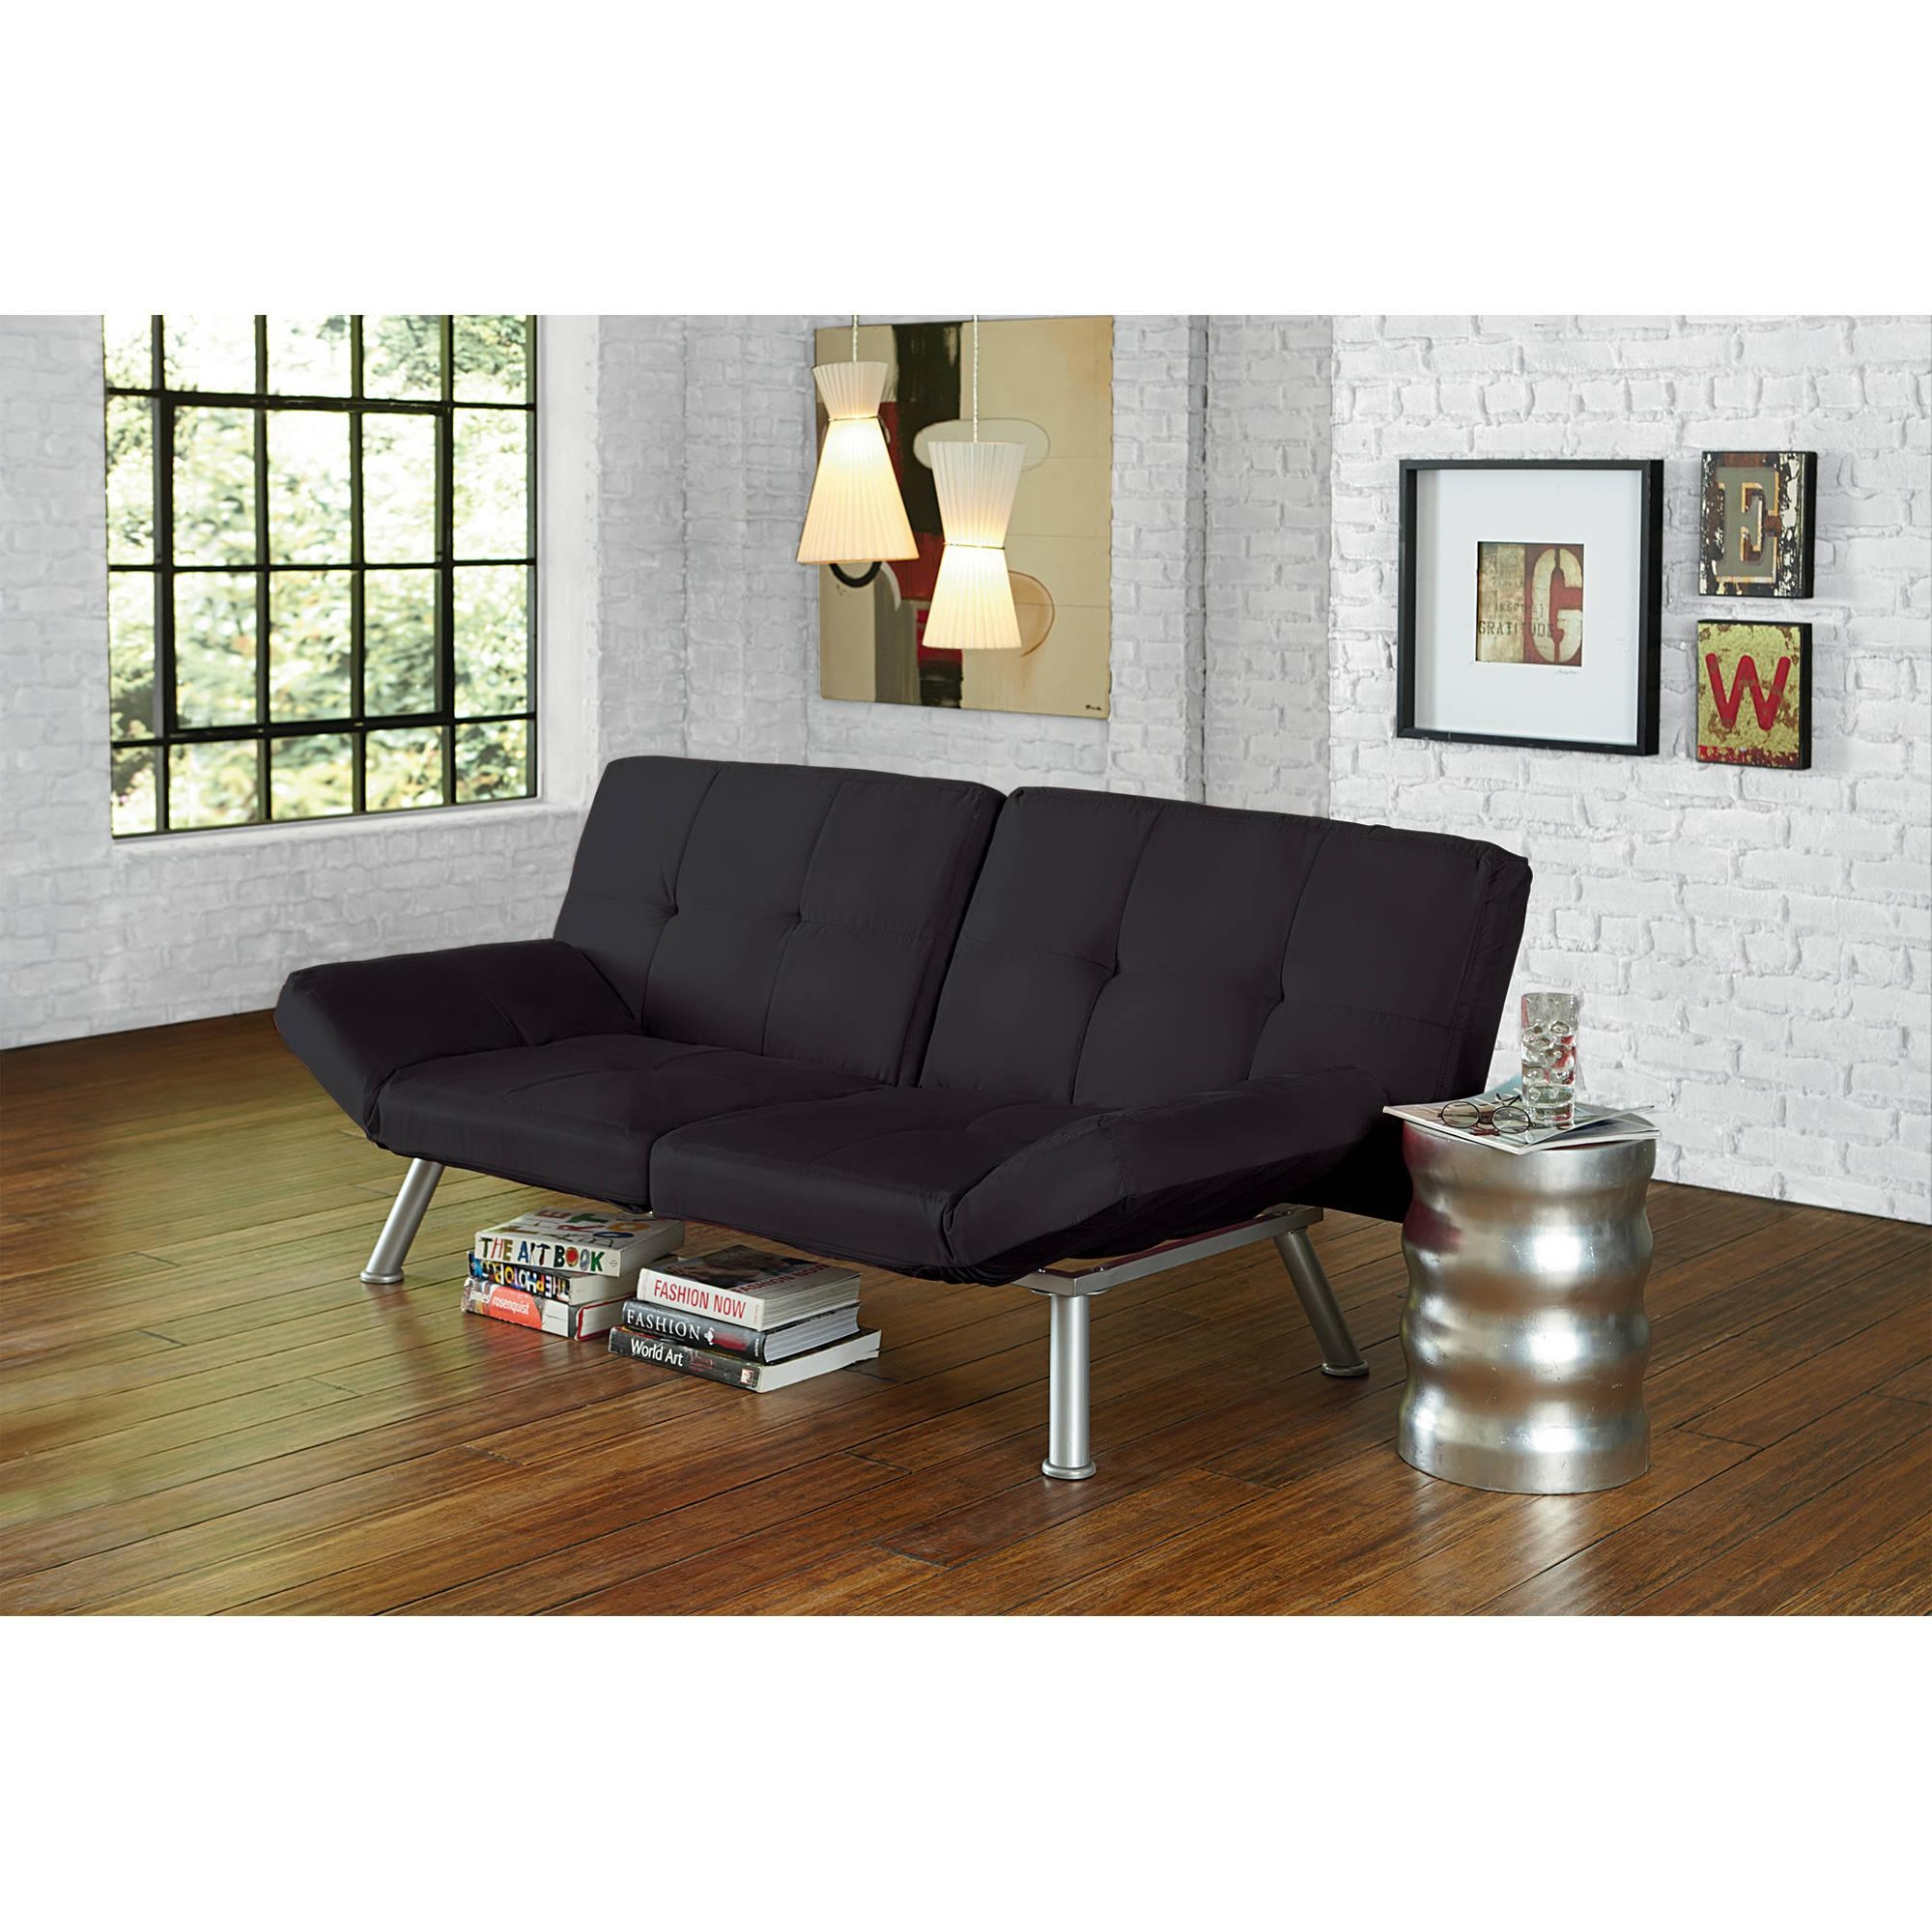 Mainstays Contempo Futon, Multiple Colors – Walmart Pertaining To Mainstay Sofas (Image 12 of 20)